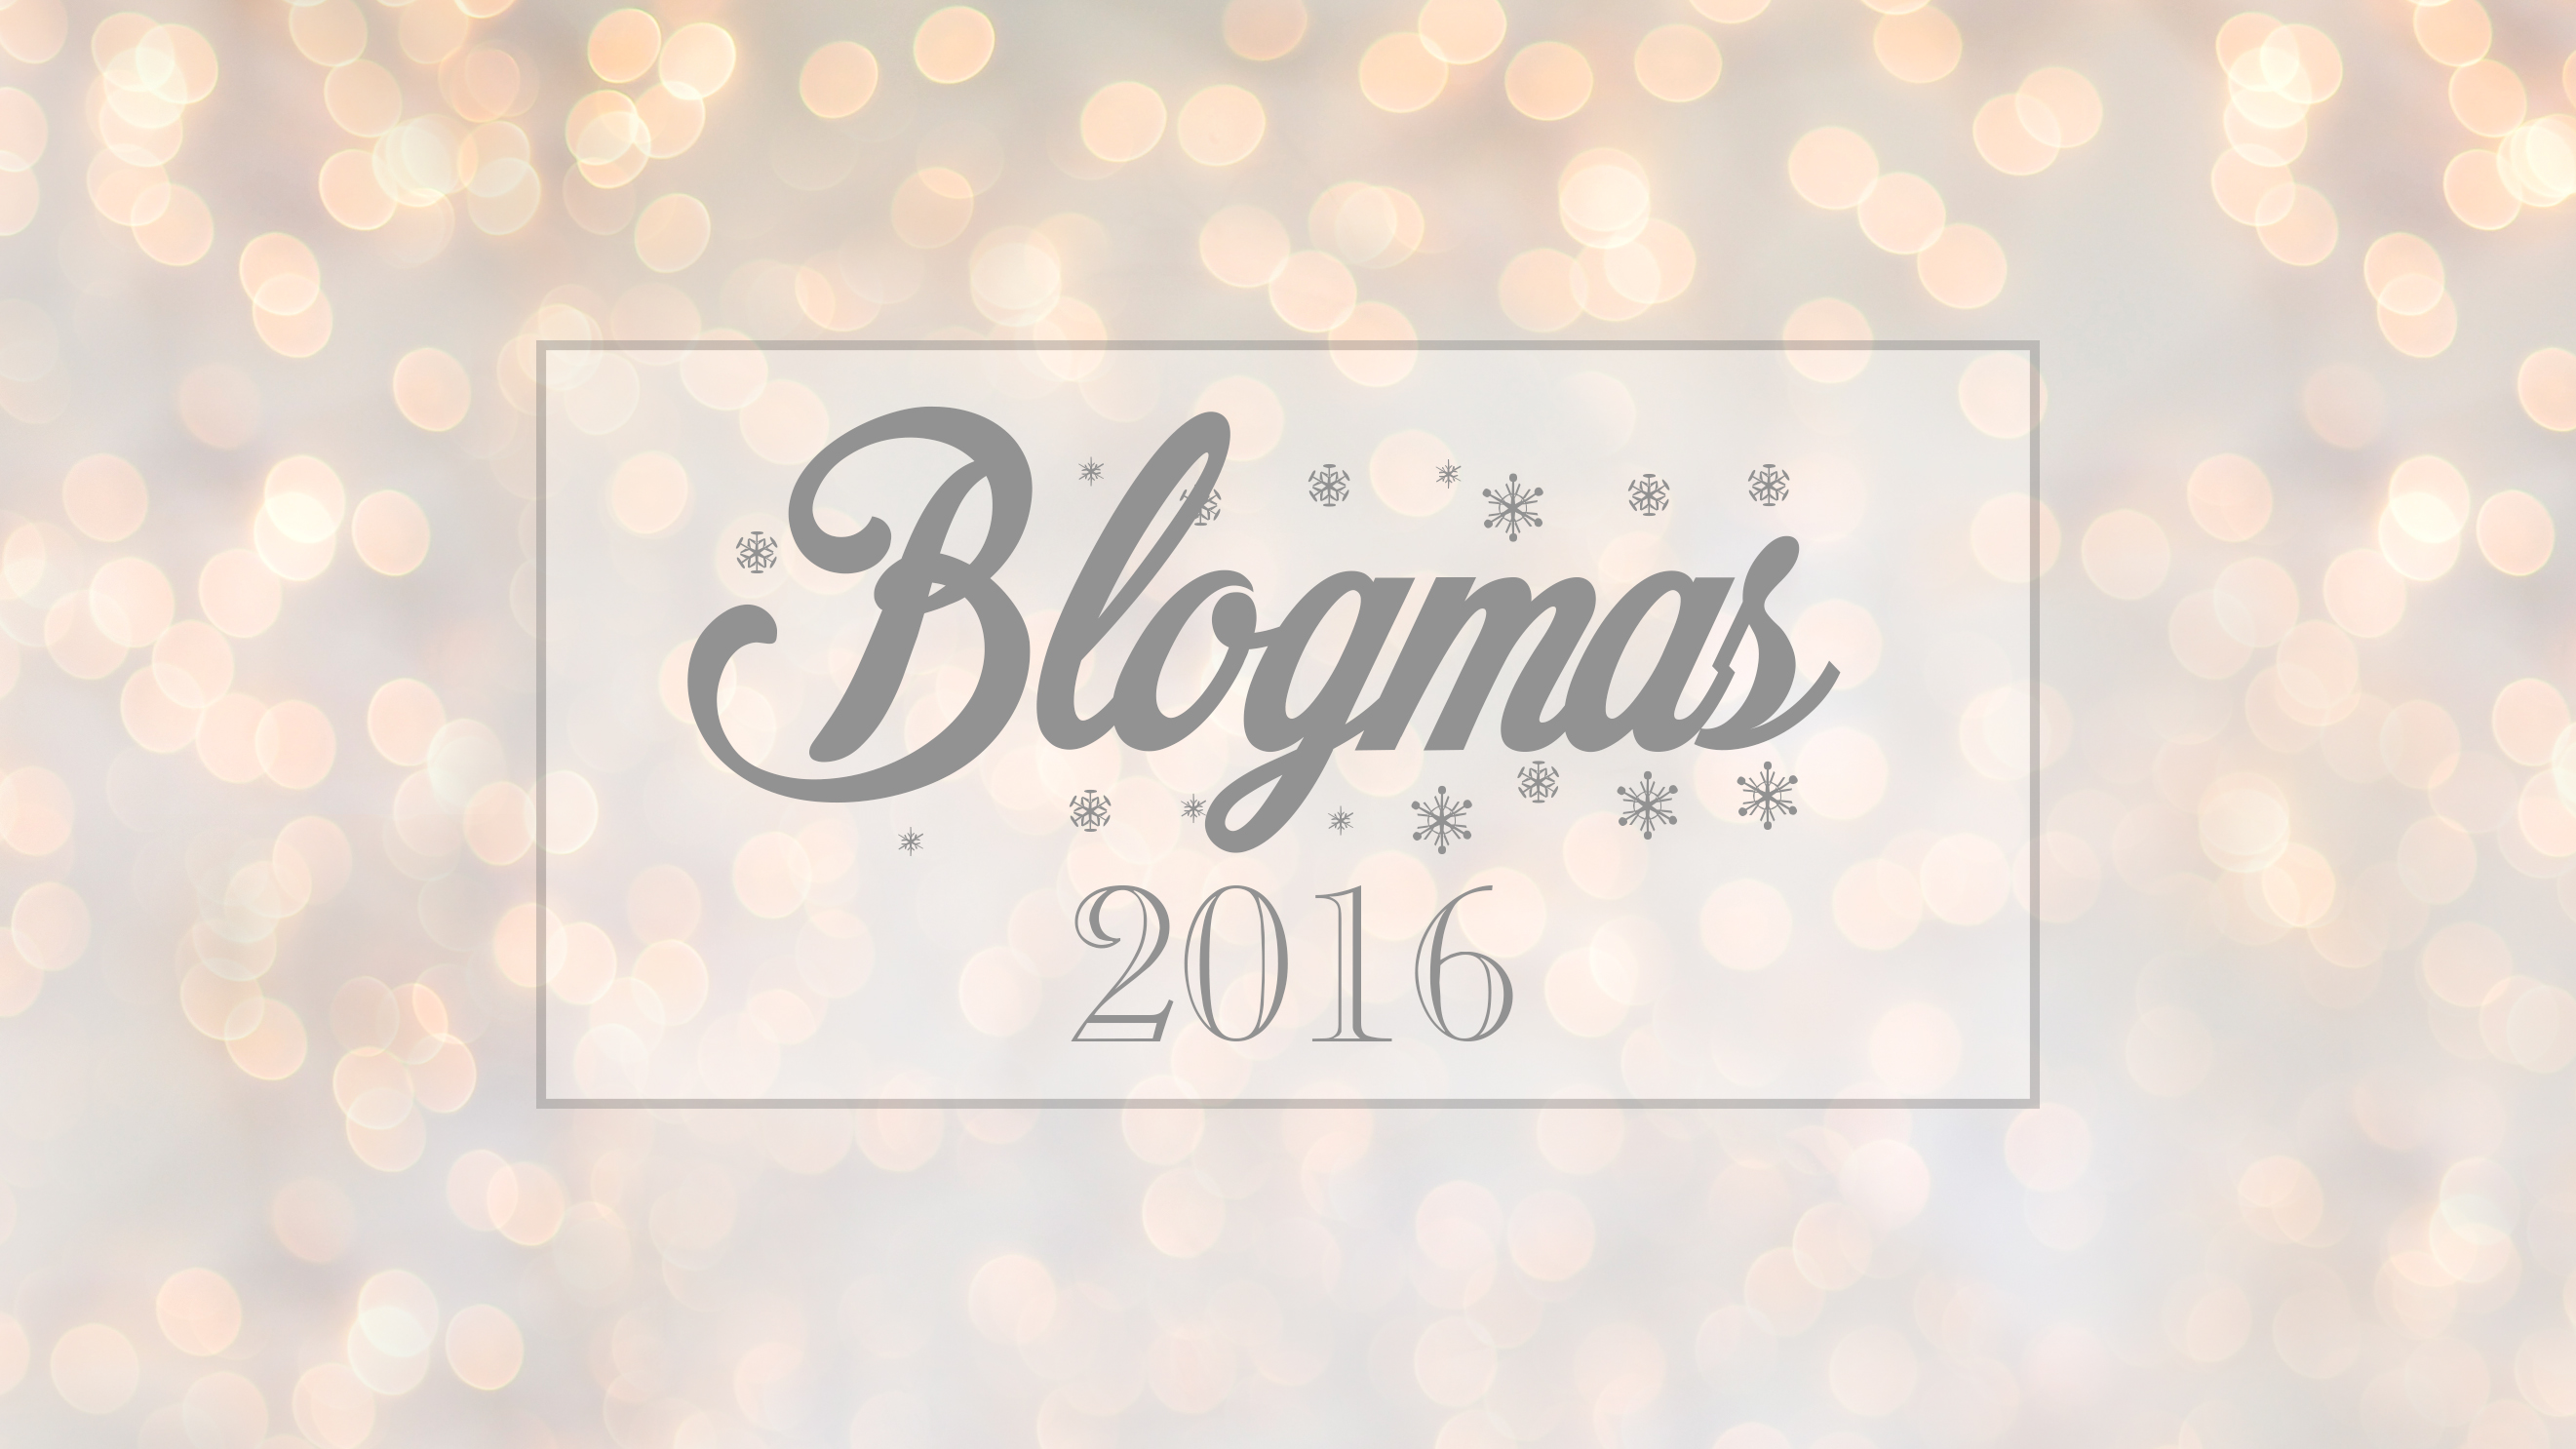 BLOGMAS | WINTER NIGHTS IN